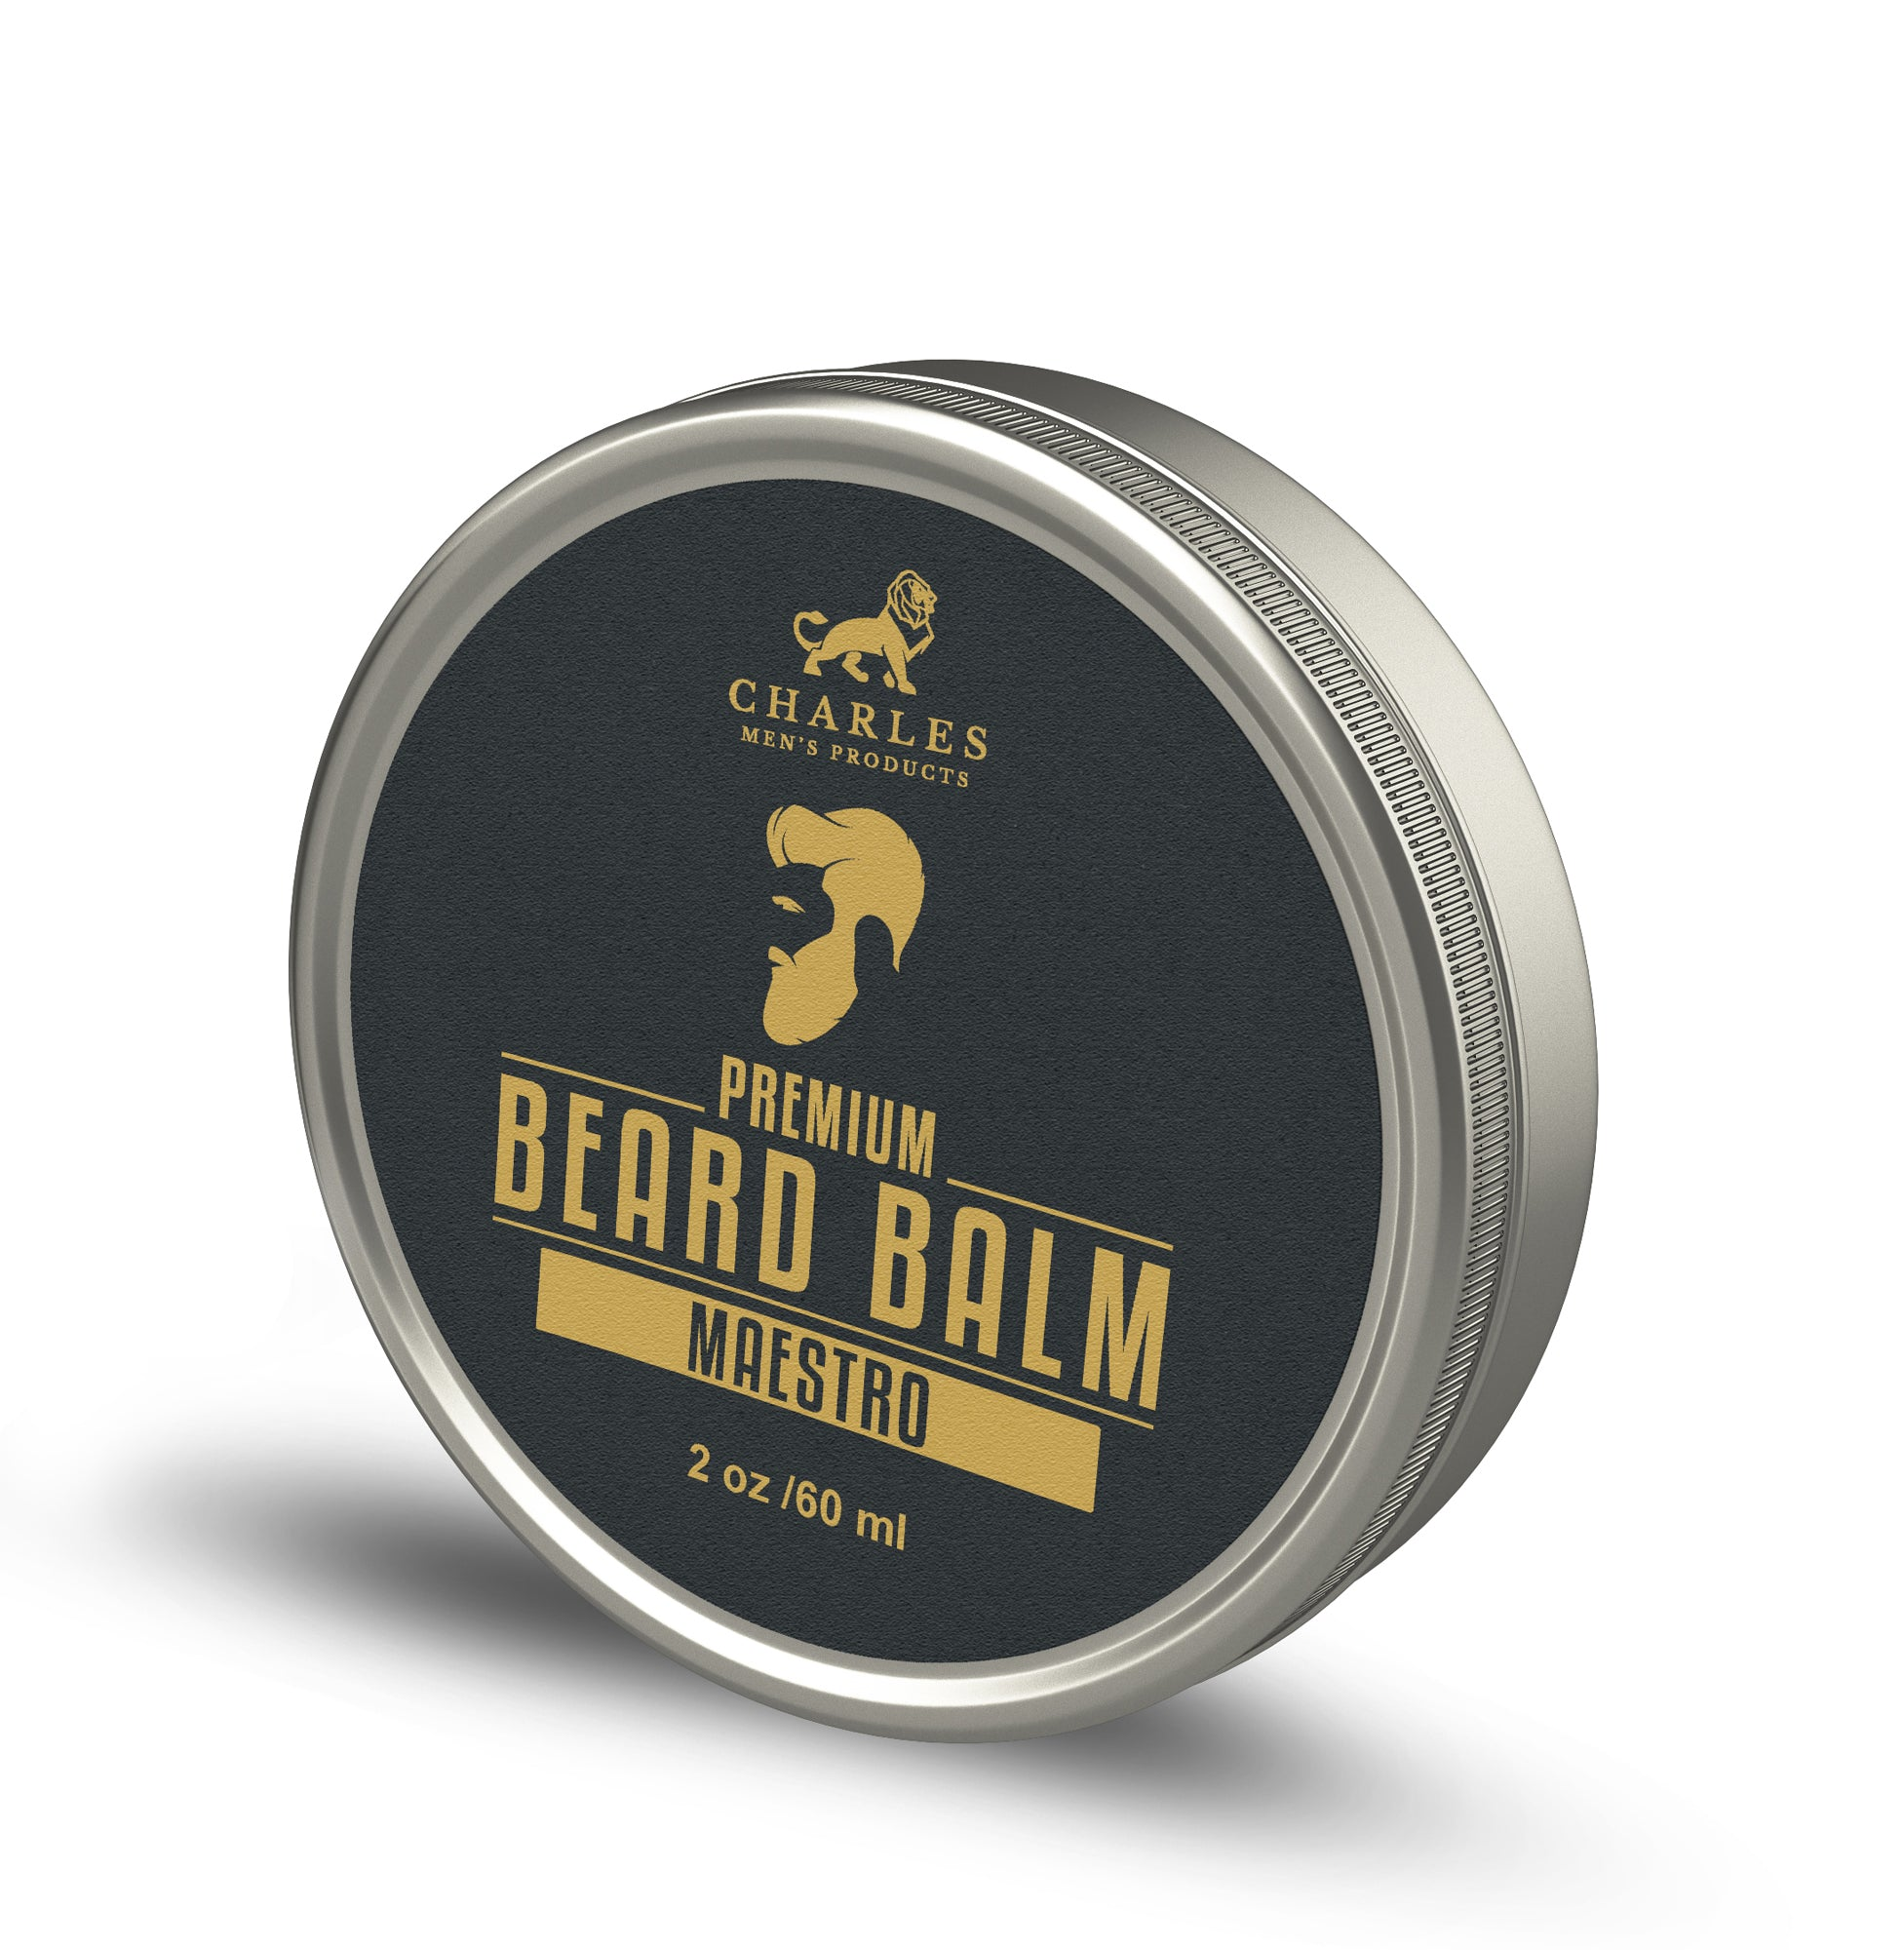 Charles Men's Product Beard Balm 2oz. Charles Premium Beard Balm helps improve your beard and skin health. Our Vitamin E Oil conditions the skin underneath your beard, eliminating flaking,while our other essential oils combine to help reduce beard itch and dandruff.